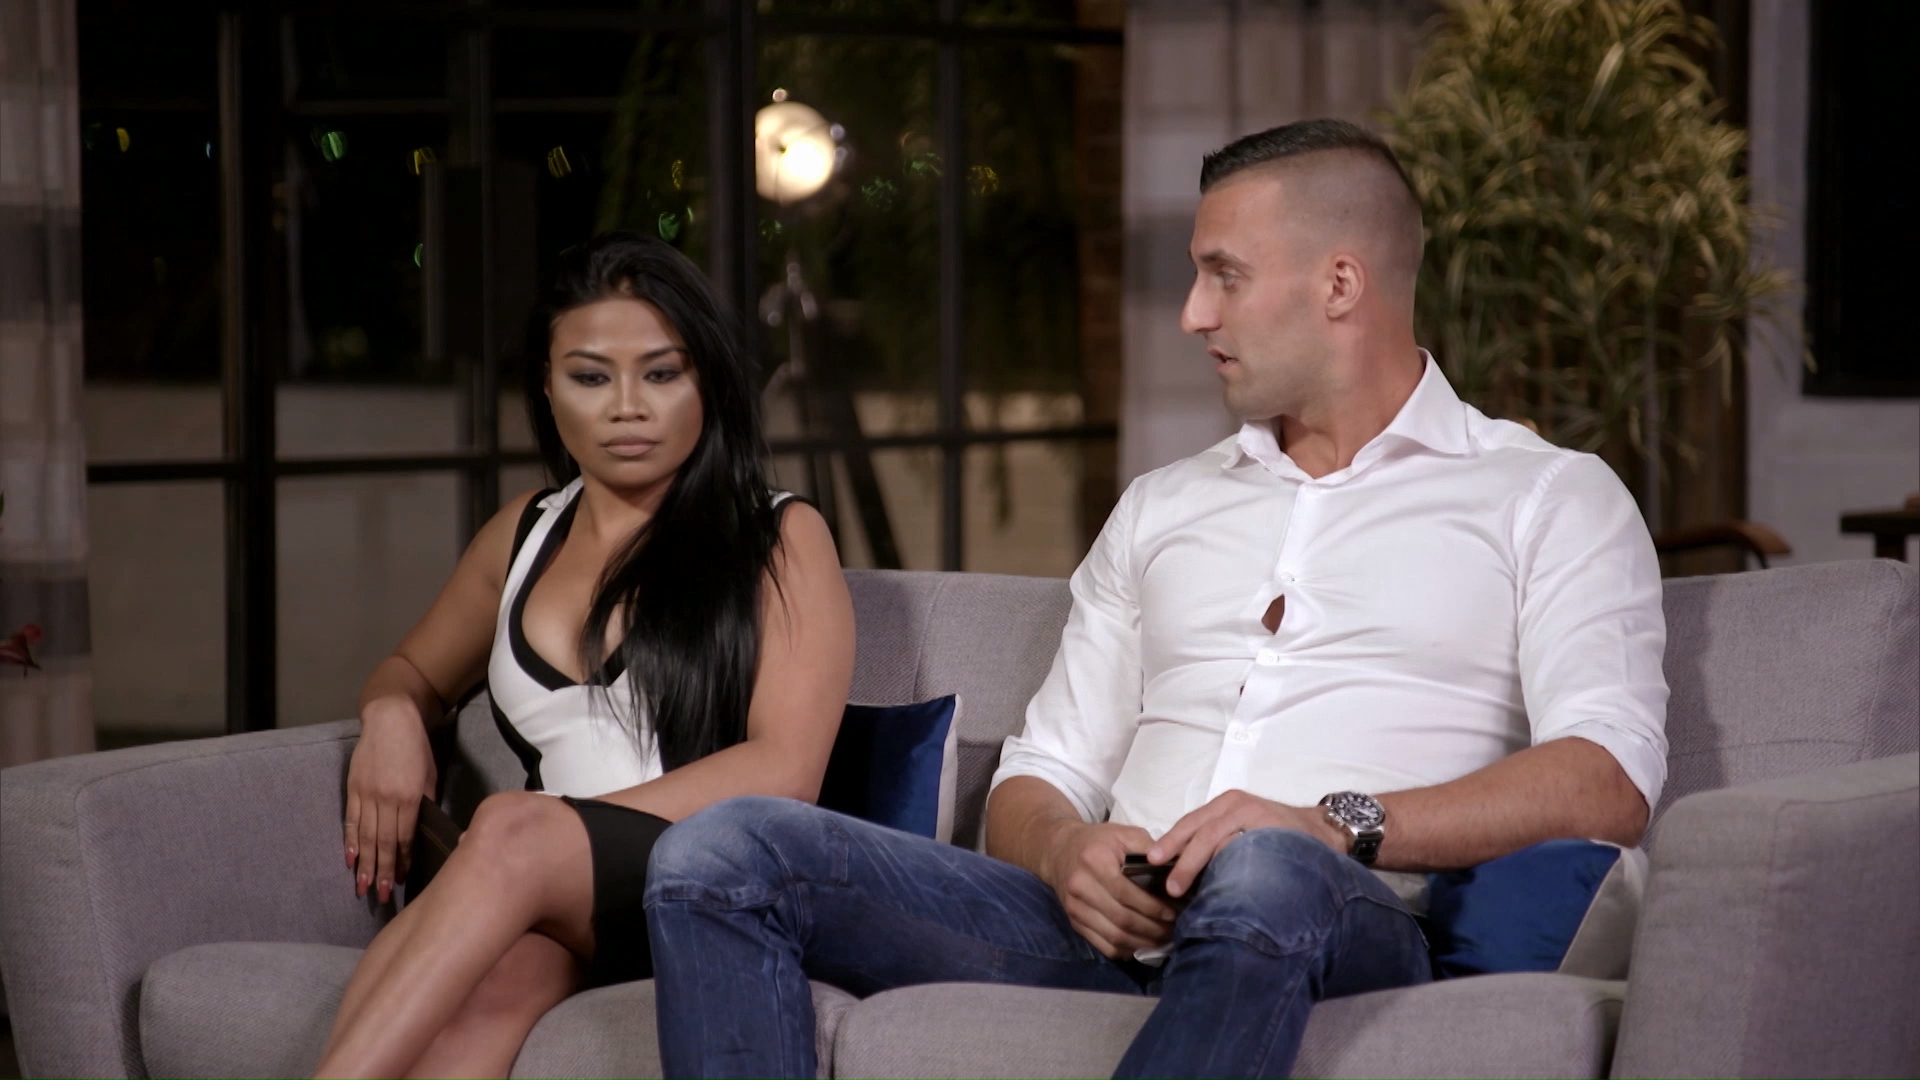 Will Nic give Cyrell a second chance?